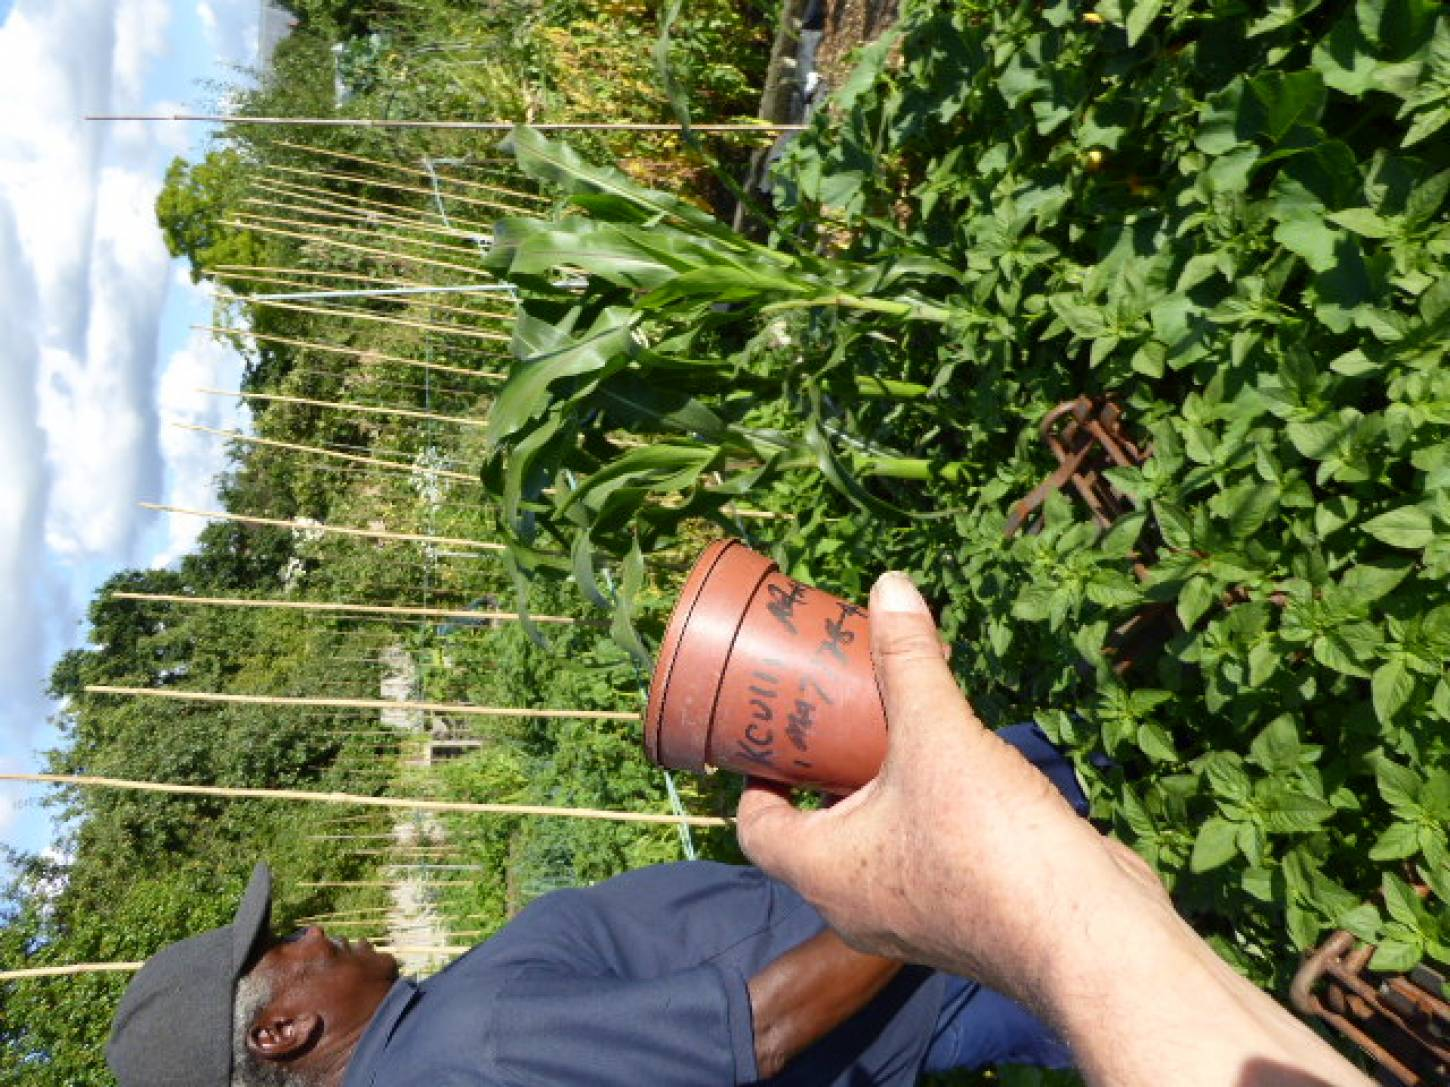 Peruvian maize seeds passed to Roy on allotments - 5:57pm&nbsp;3<sup>rd</sup>&nbsp;Jul.&nbsp;'17  <a href='http://maps.google.com/?t=h&q=51.444169,-0.098864&z=18&output=embed' target=_blank><img src='http://www.brockwell-bake.org.uk/img/marker.png' style='border:none;vertical-align:top' height=16px></a>